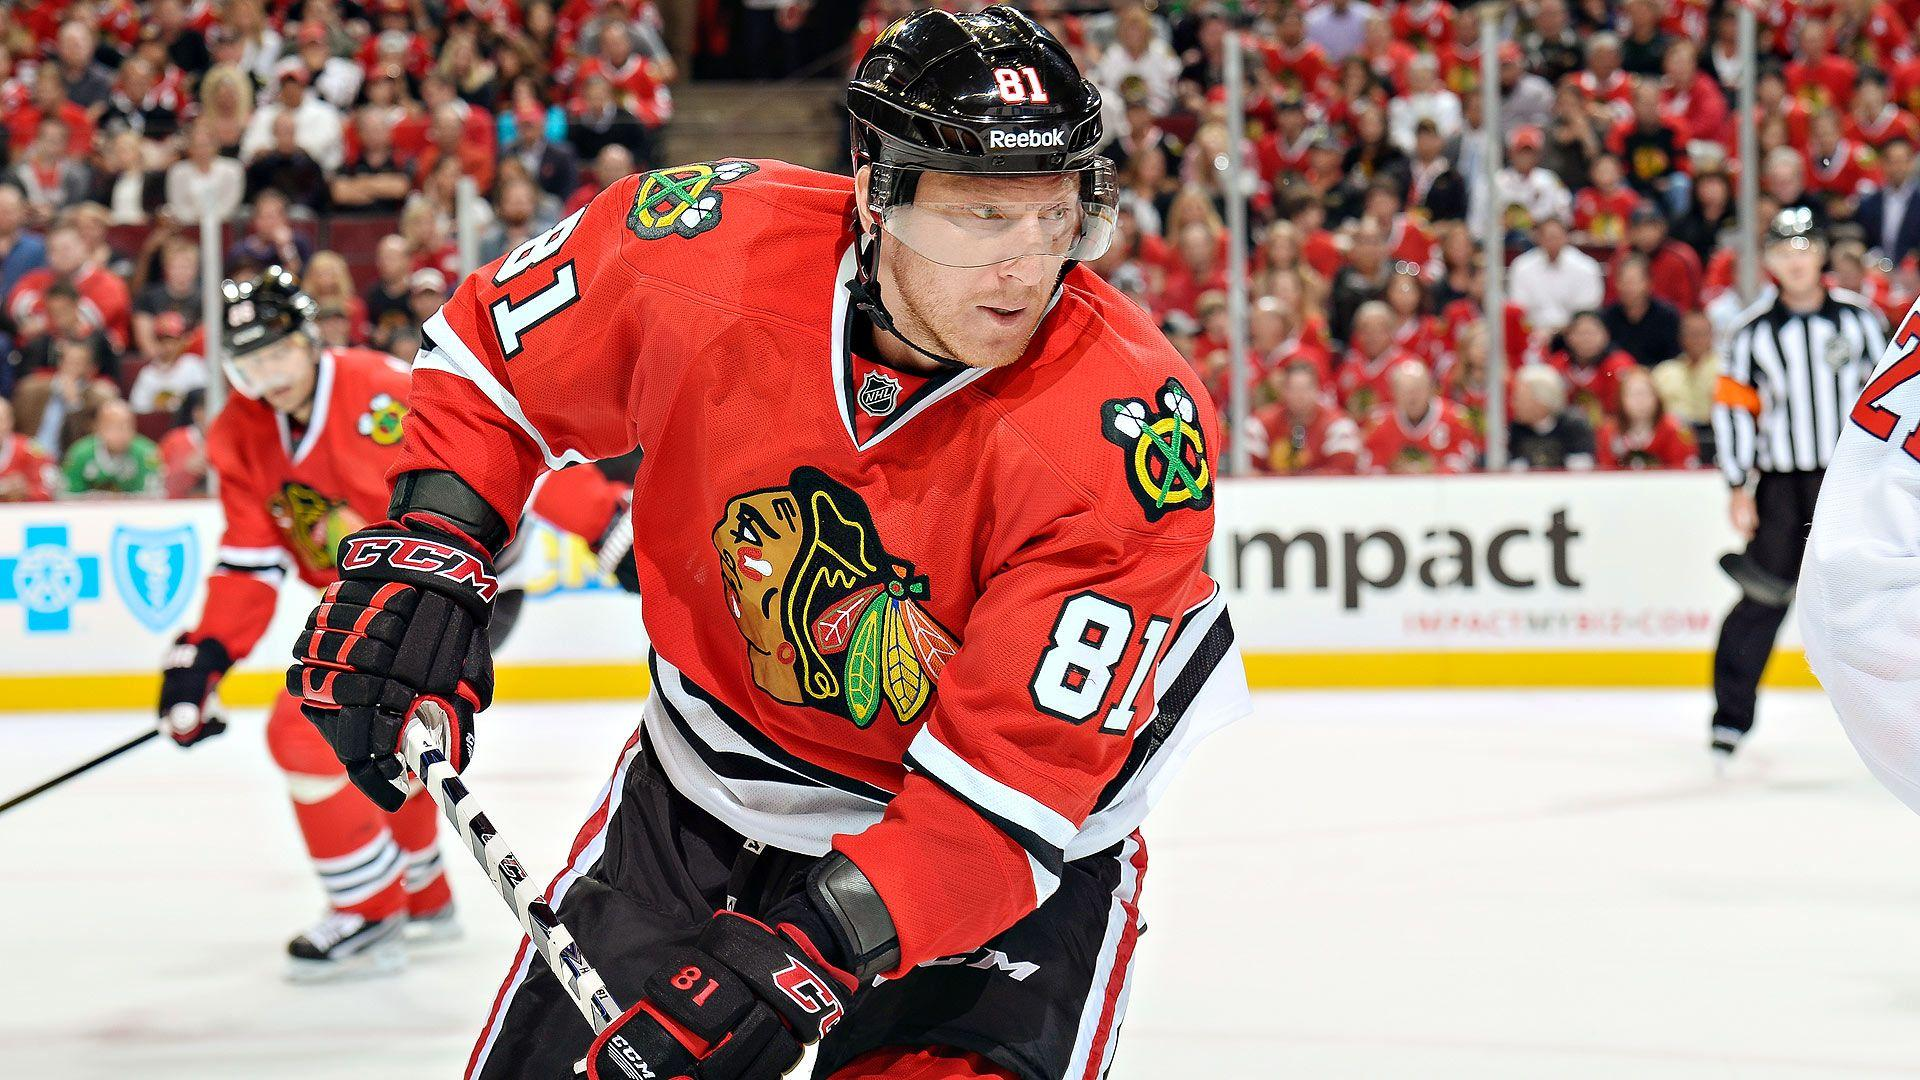 Marian Hossa of Chicago Blackhawks out again Monday